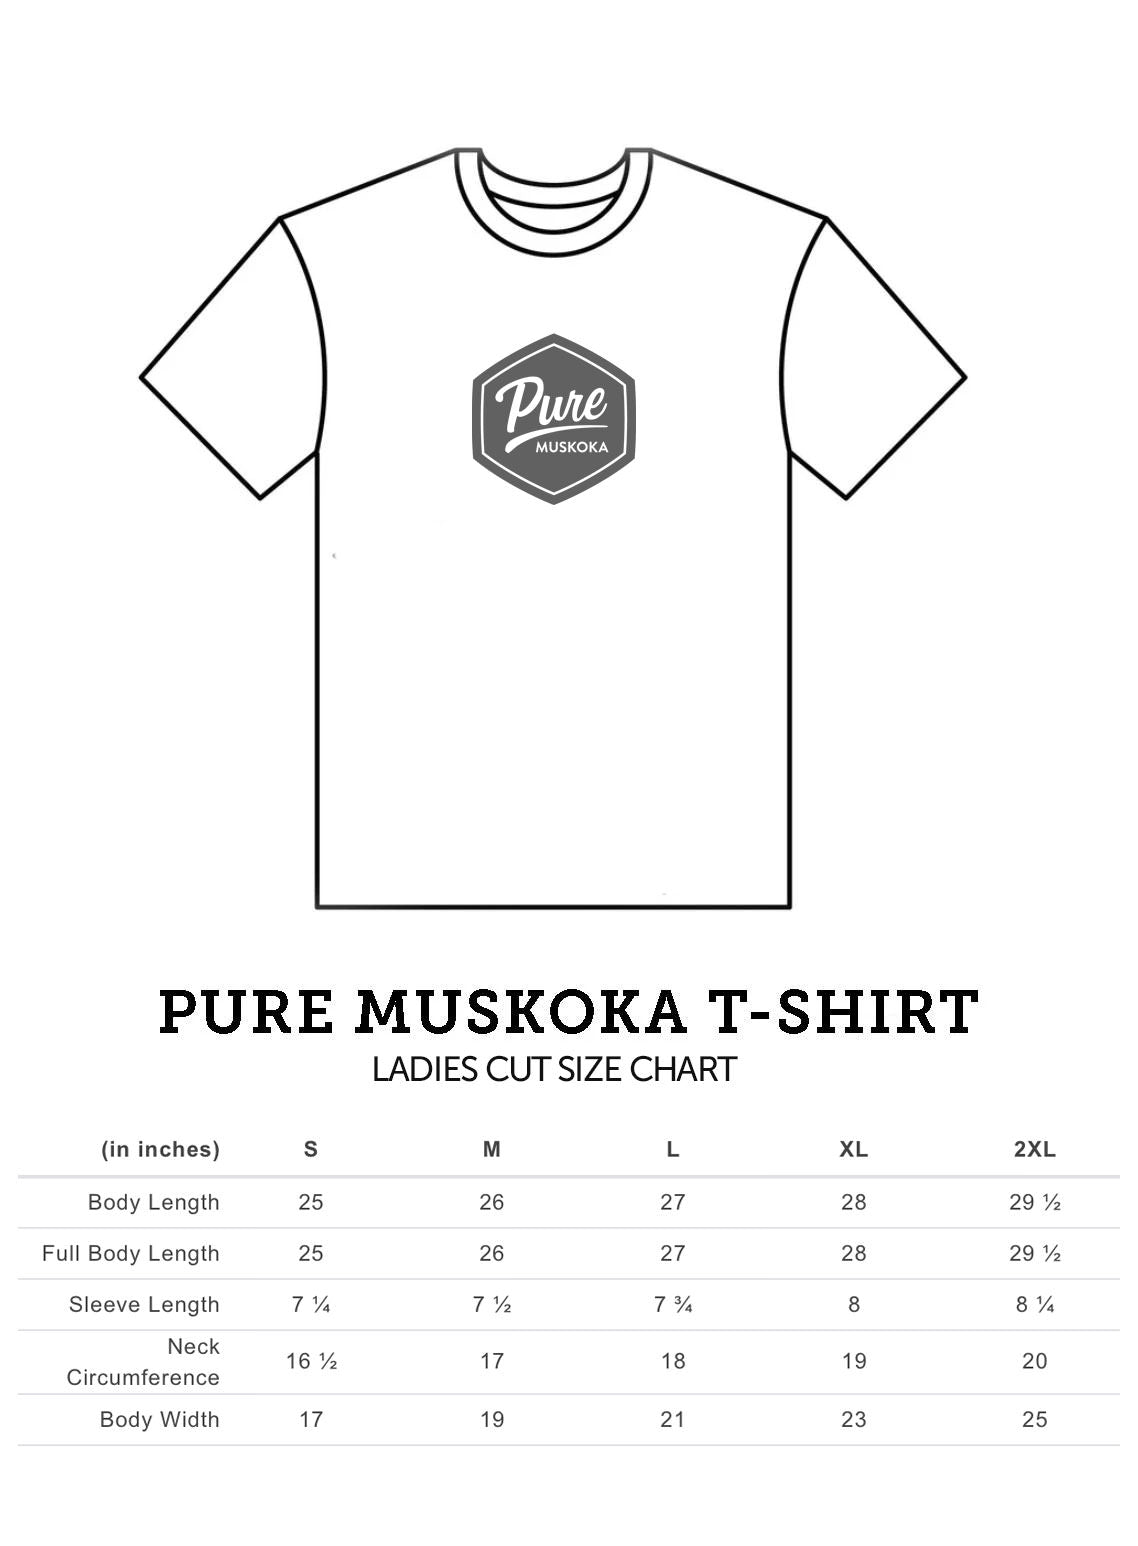 Pure Muskoka Ladies Cut T-Shirt Size Chart